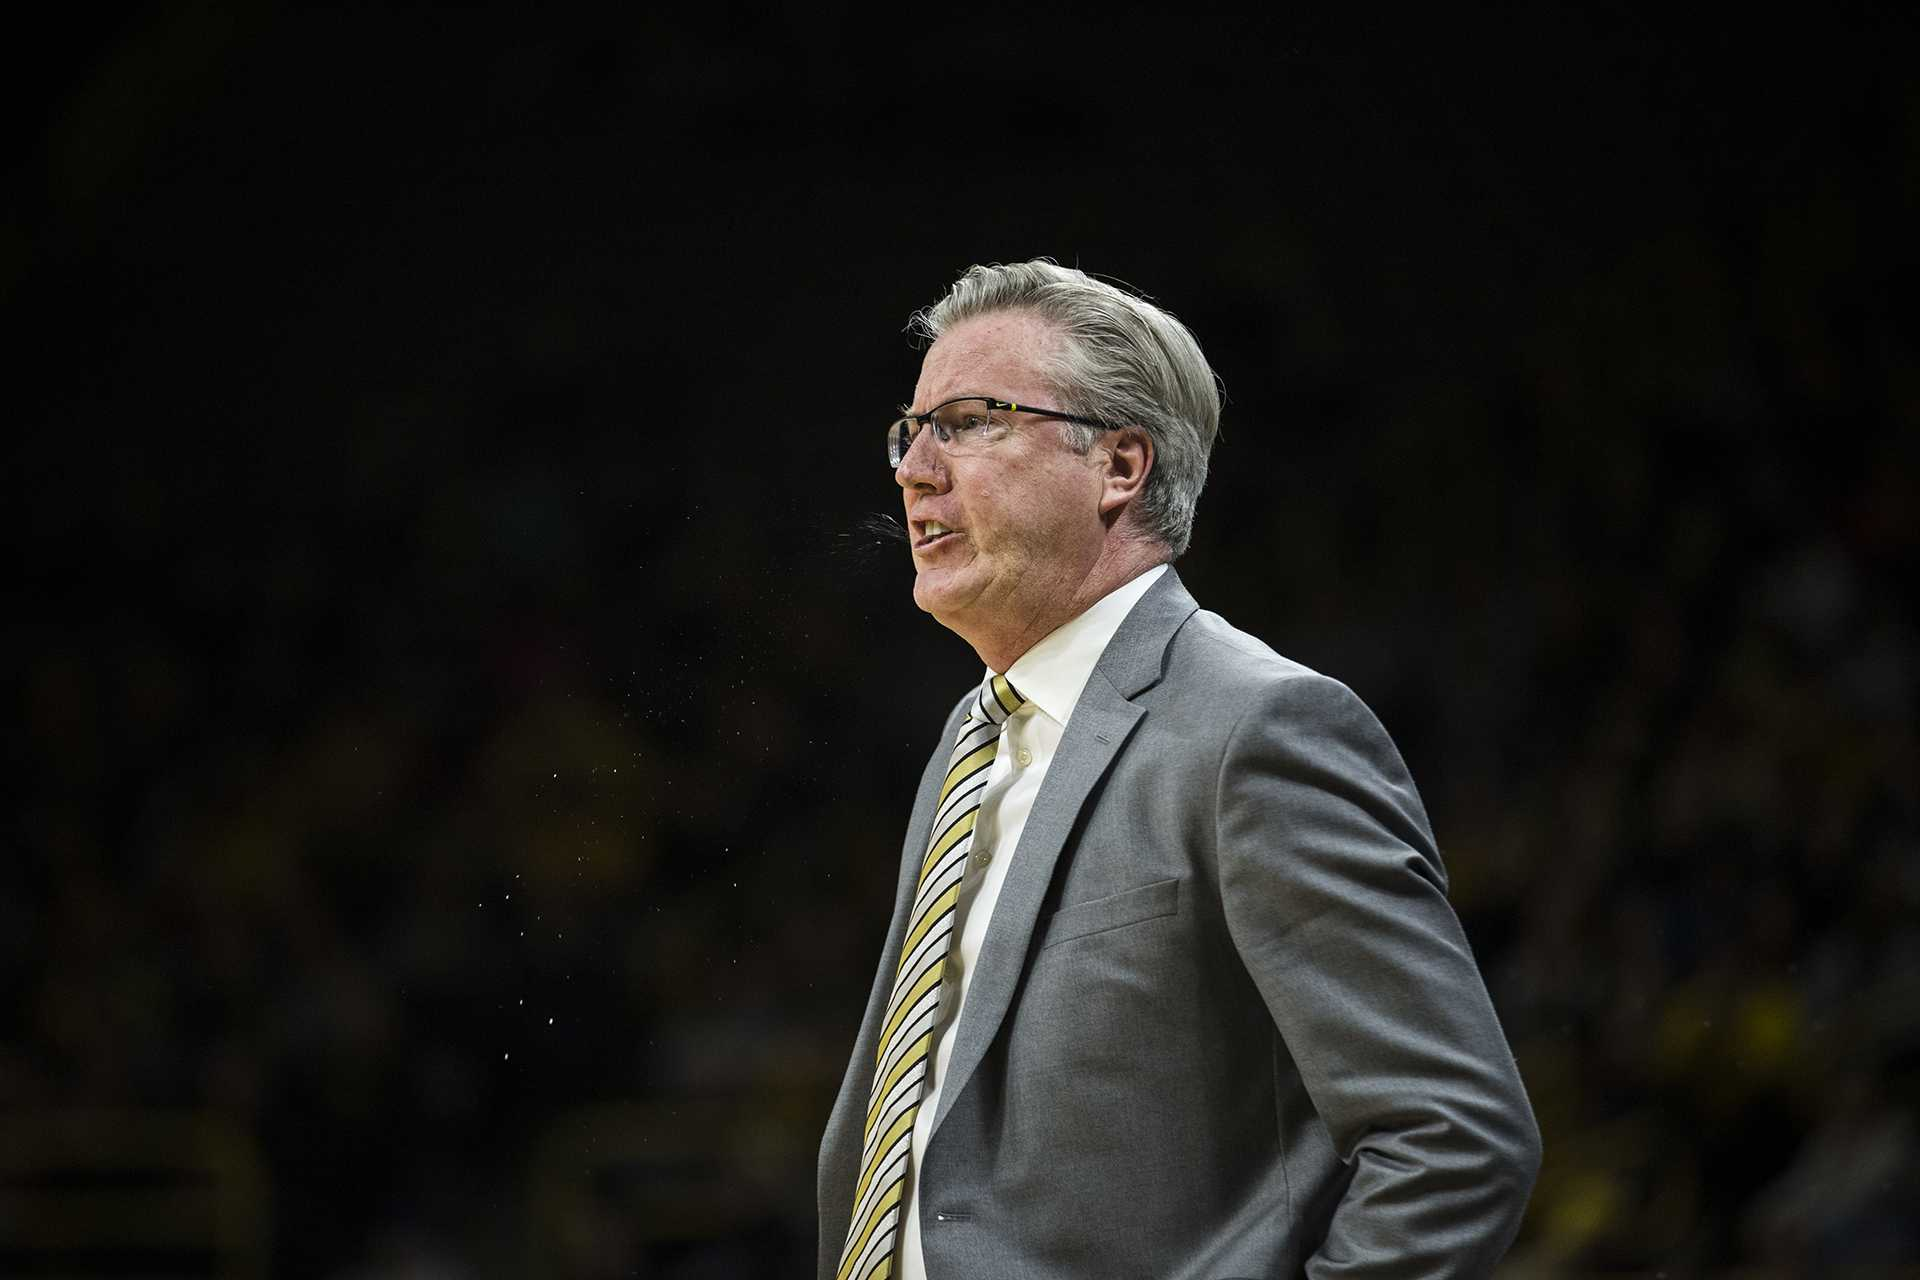 Iowa head coach Fran McCaffery reacts to a call by the referee during the NCAA basketball game between Iowa and Michigan at Carver-Hawkeye Arena on Tuesday, Jan. 2, 2017. The Hawkeyes fell to the Wolverines 75-68. (Ben Allan Smith/The Daily Iowan)